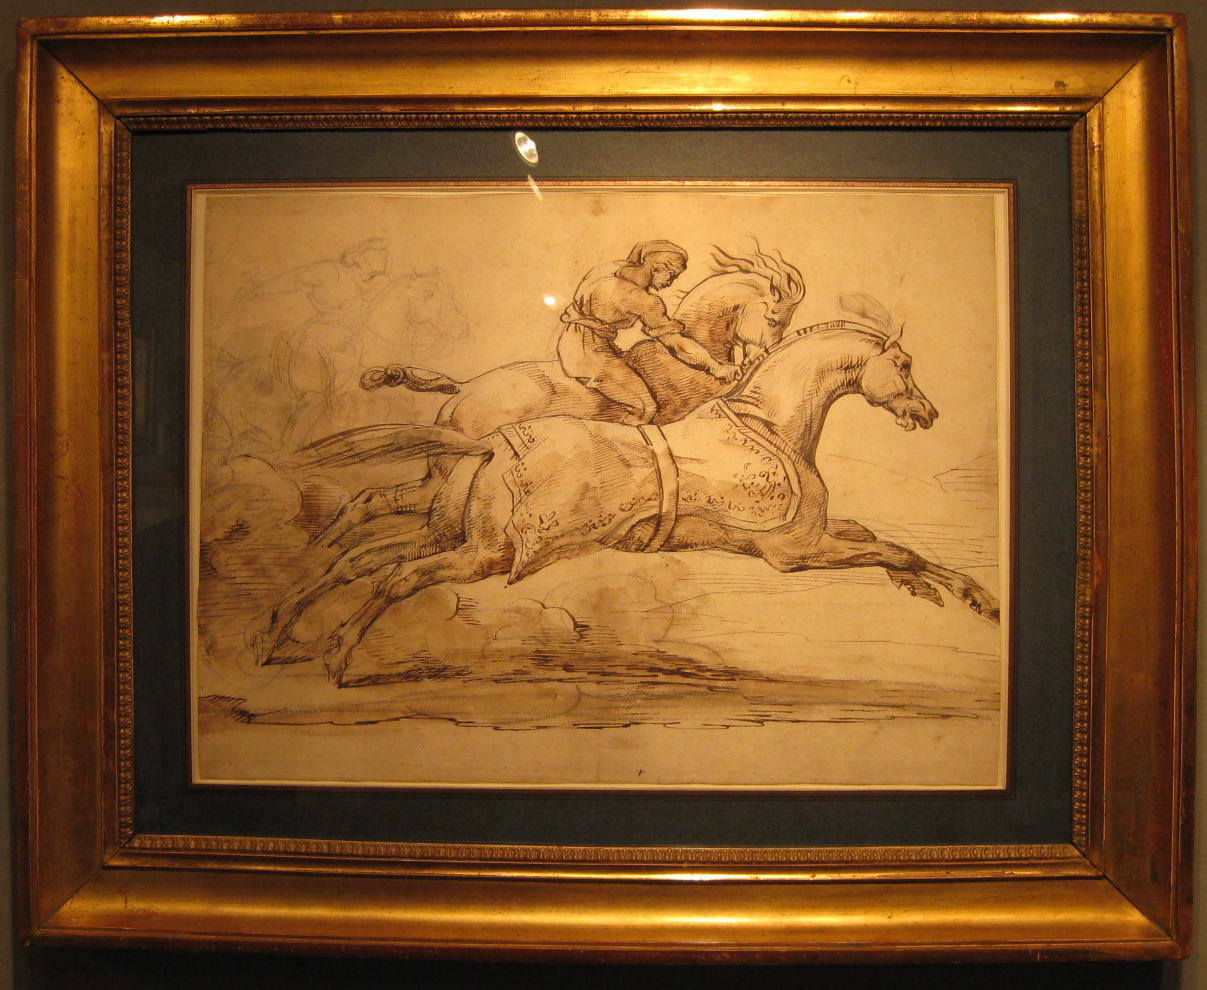 Thédore Géricault (French, 1791-1824) Two Galloping Horses. Pen and brown ink and brown wash, over an extensive underdrawing in black chalk. 35.3 by 48.4 cm. Stephen Ongpin Fine Art.